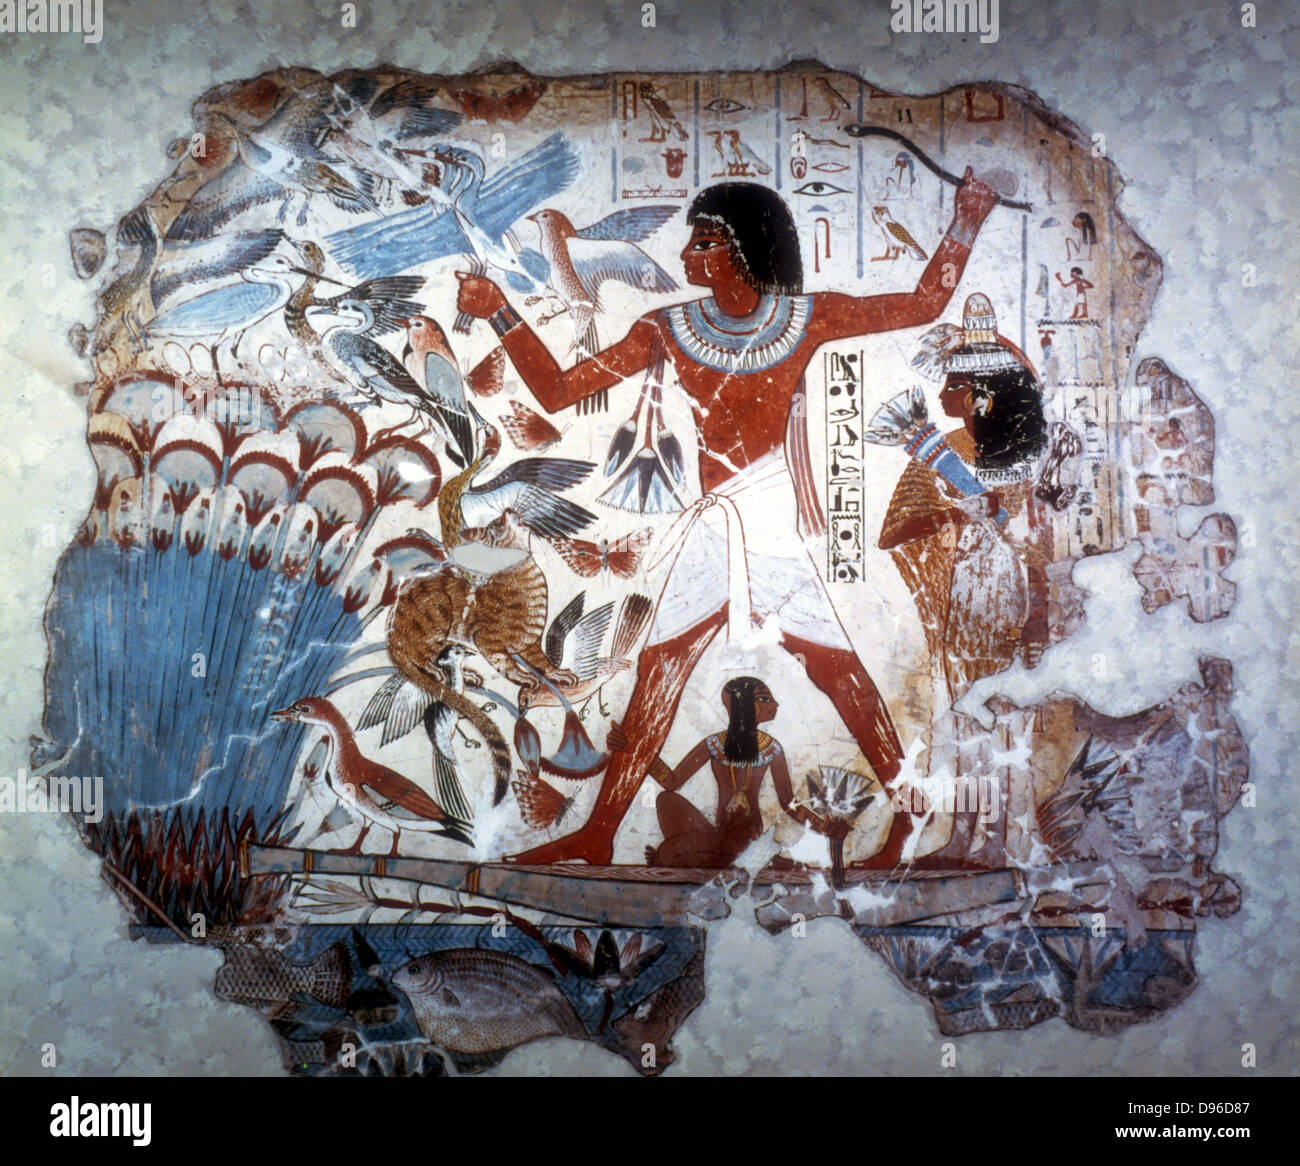 Ancient Egyptian hunting wildfowl with a throwing stick. Picture shows Papyrus reed bed with fish and birds. Papyrus - Stock Image